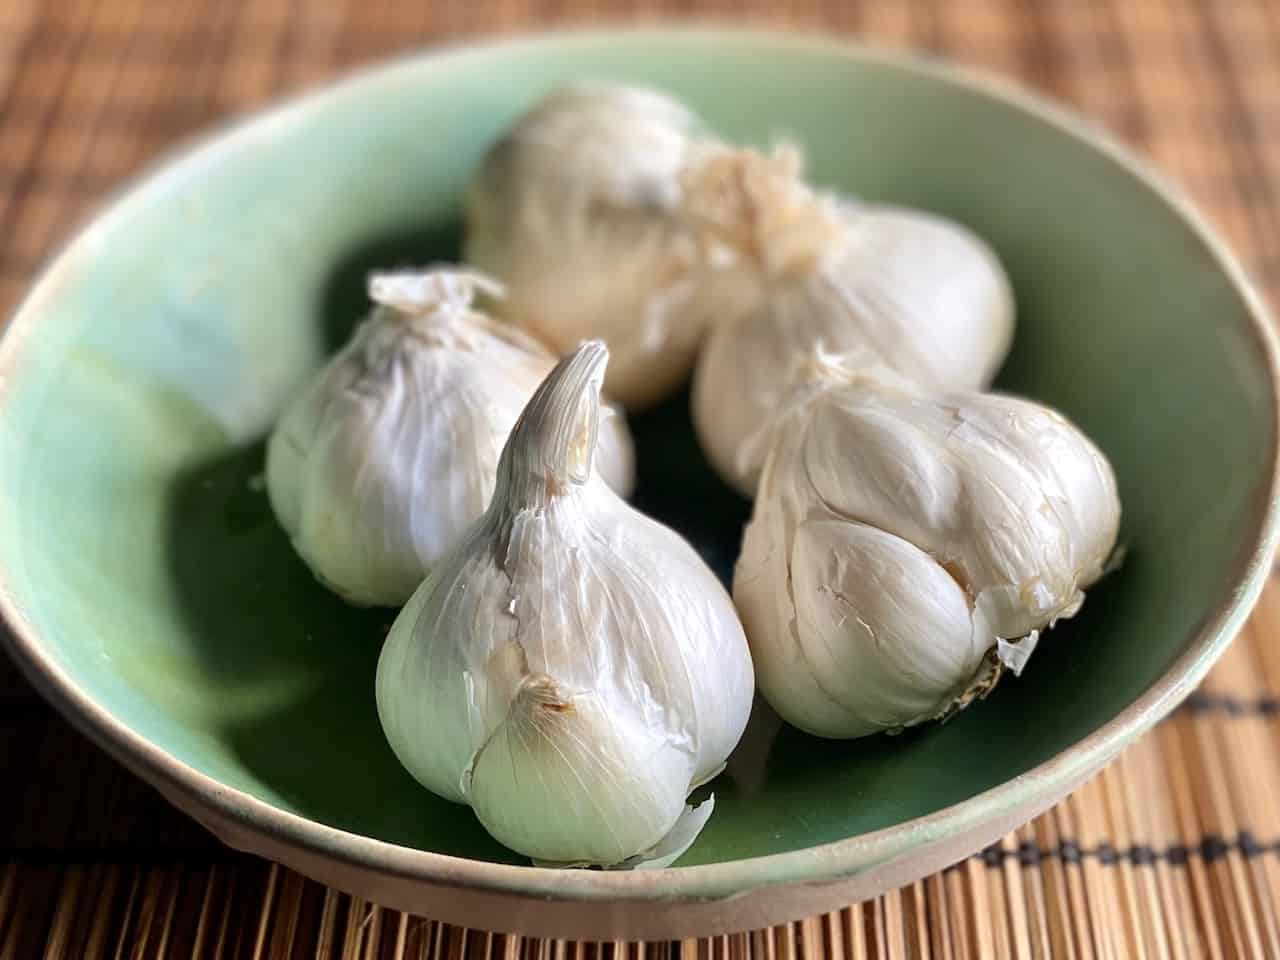 Peel Garlic - Everything you need to know to make garlic one of your kitchen buddies (Photo by Erich Boenzli)